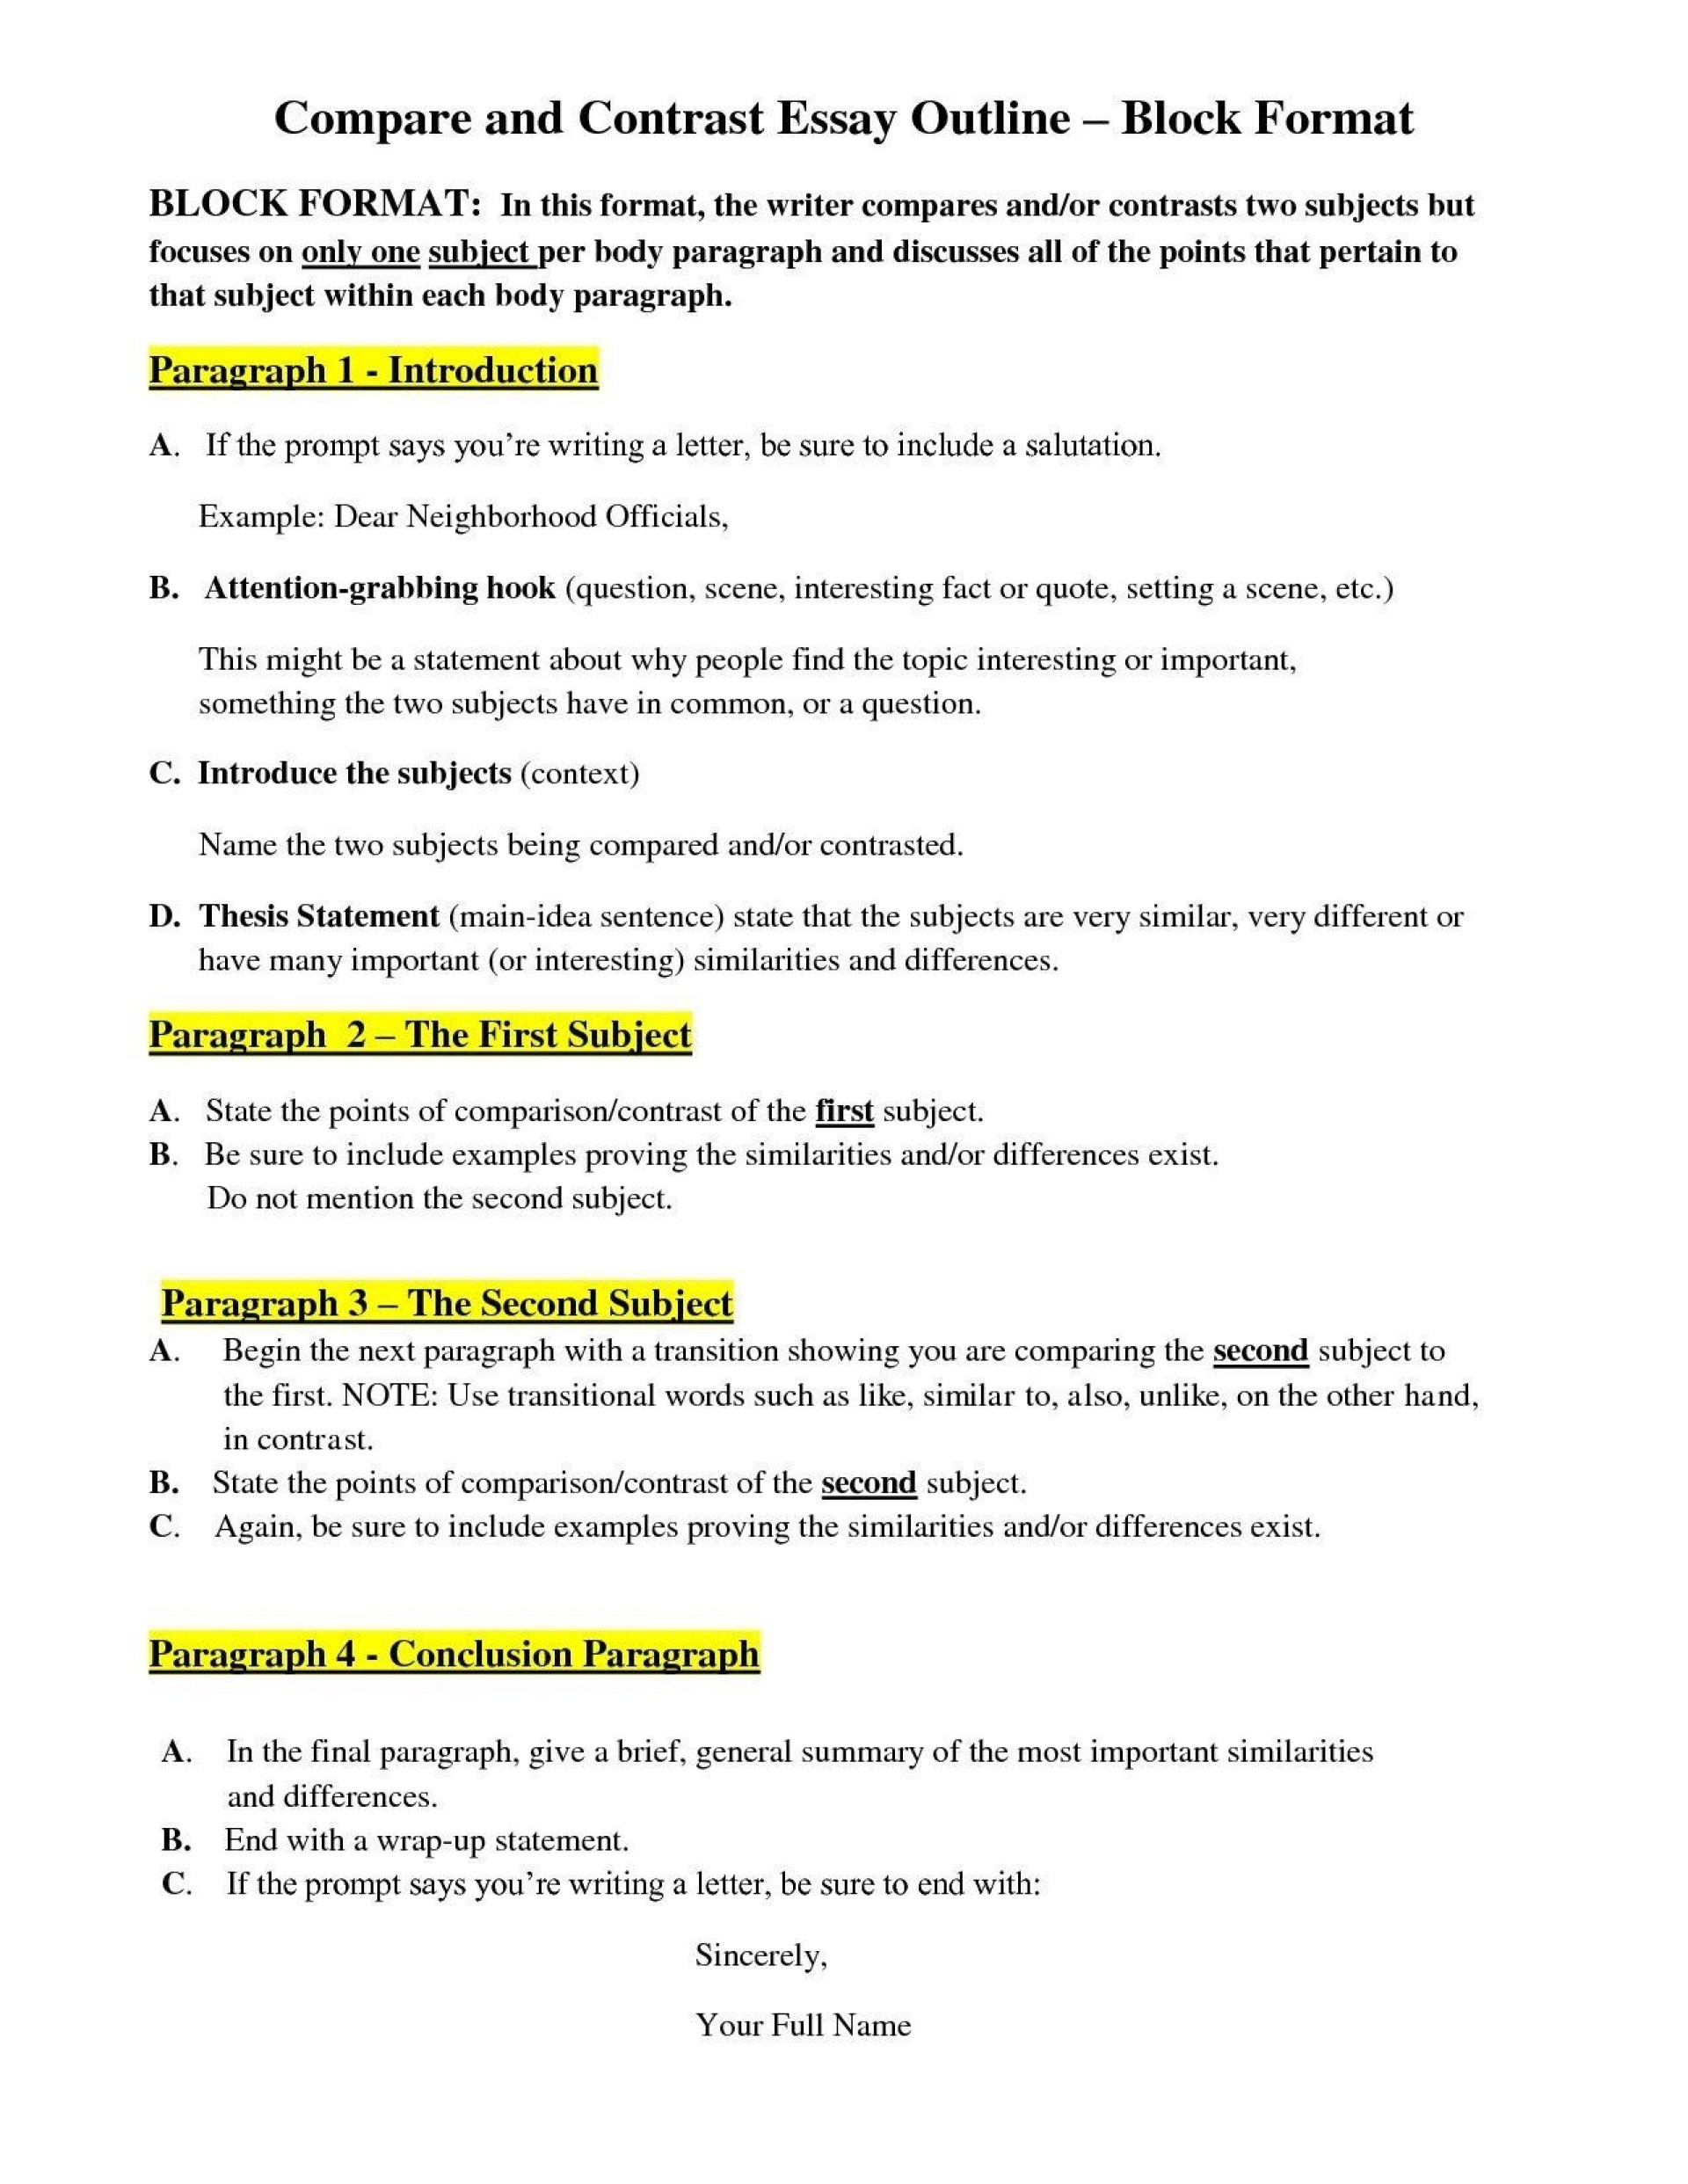 014 Essay Examplempare Andntrastmparison Best Examples Of Scenario In 6th Grade An Goo 3rd Food 5th Middle School Block Format Pdf High 4th Vs Striking Compare And Contrast Example Fourth 7th 1920